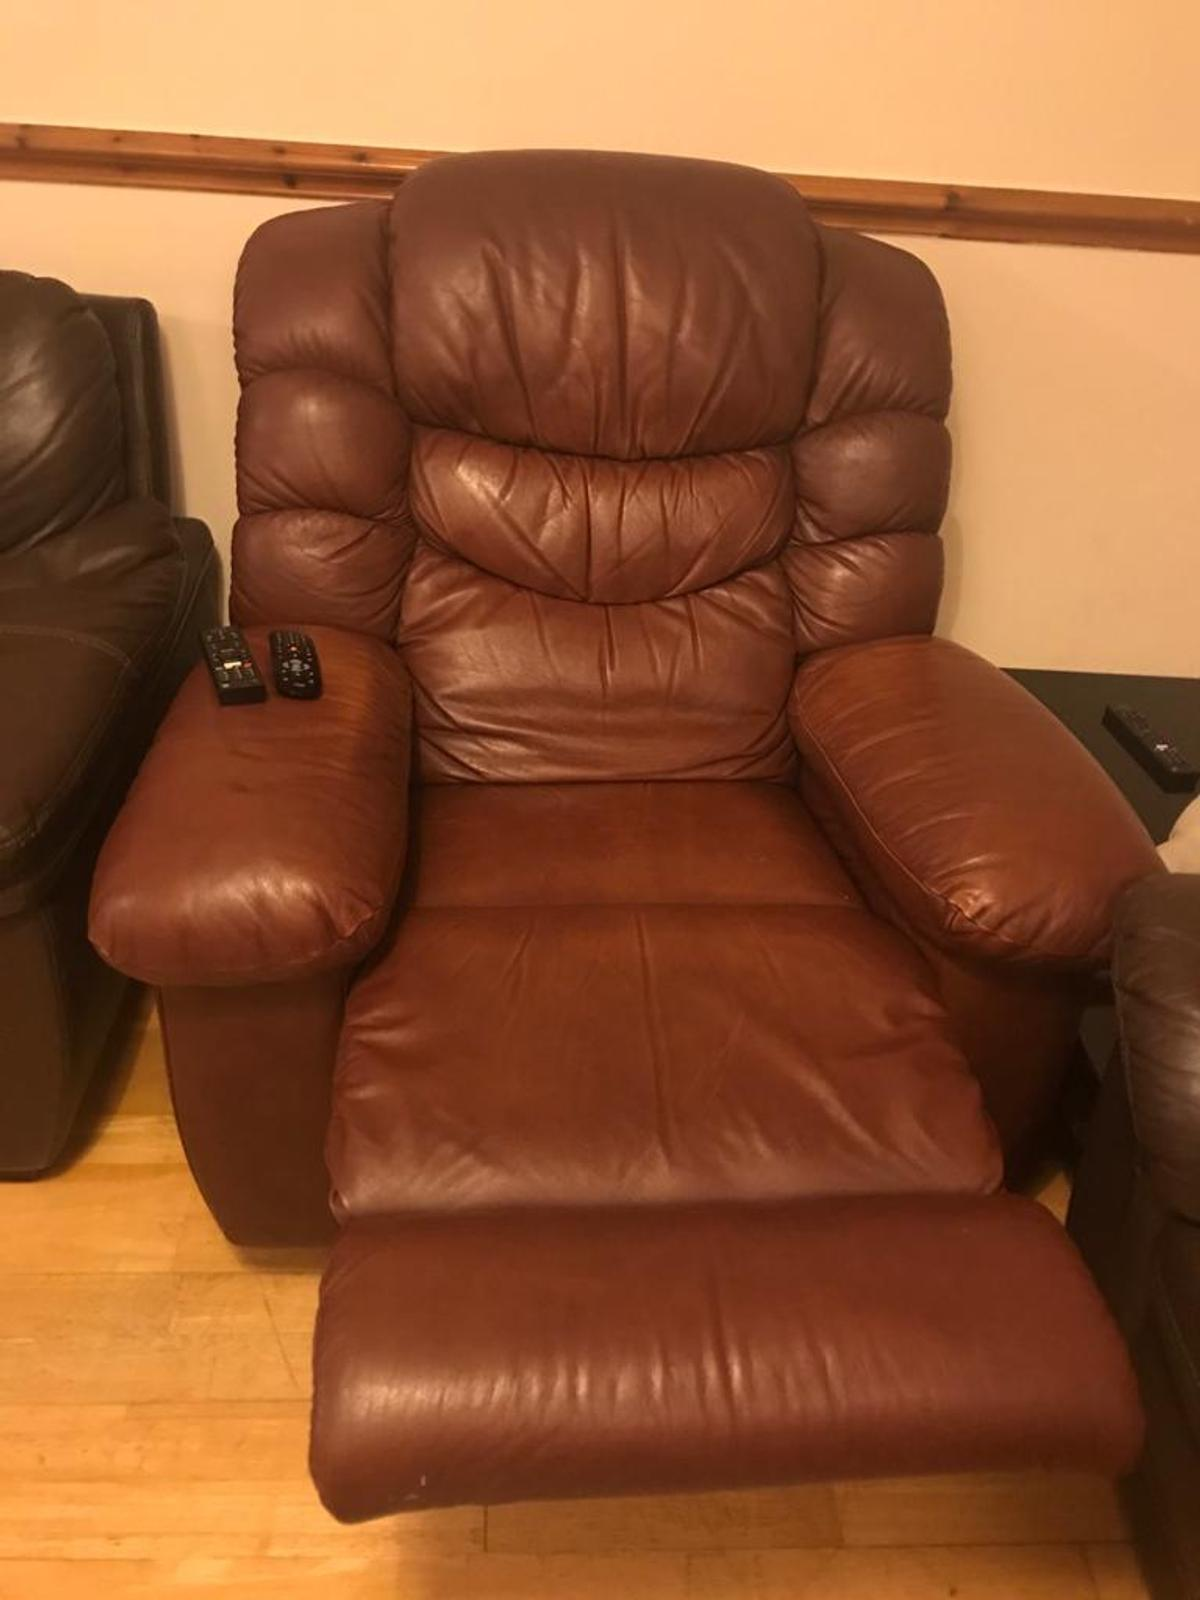 Picture of: Lazy Boy Reclining Chair In Brown Leather In Ub4 London For 150 00 For Sale Shpock